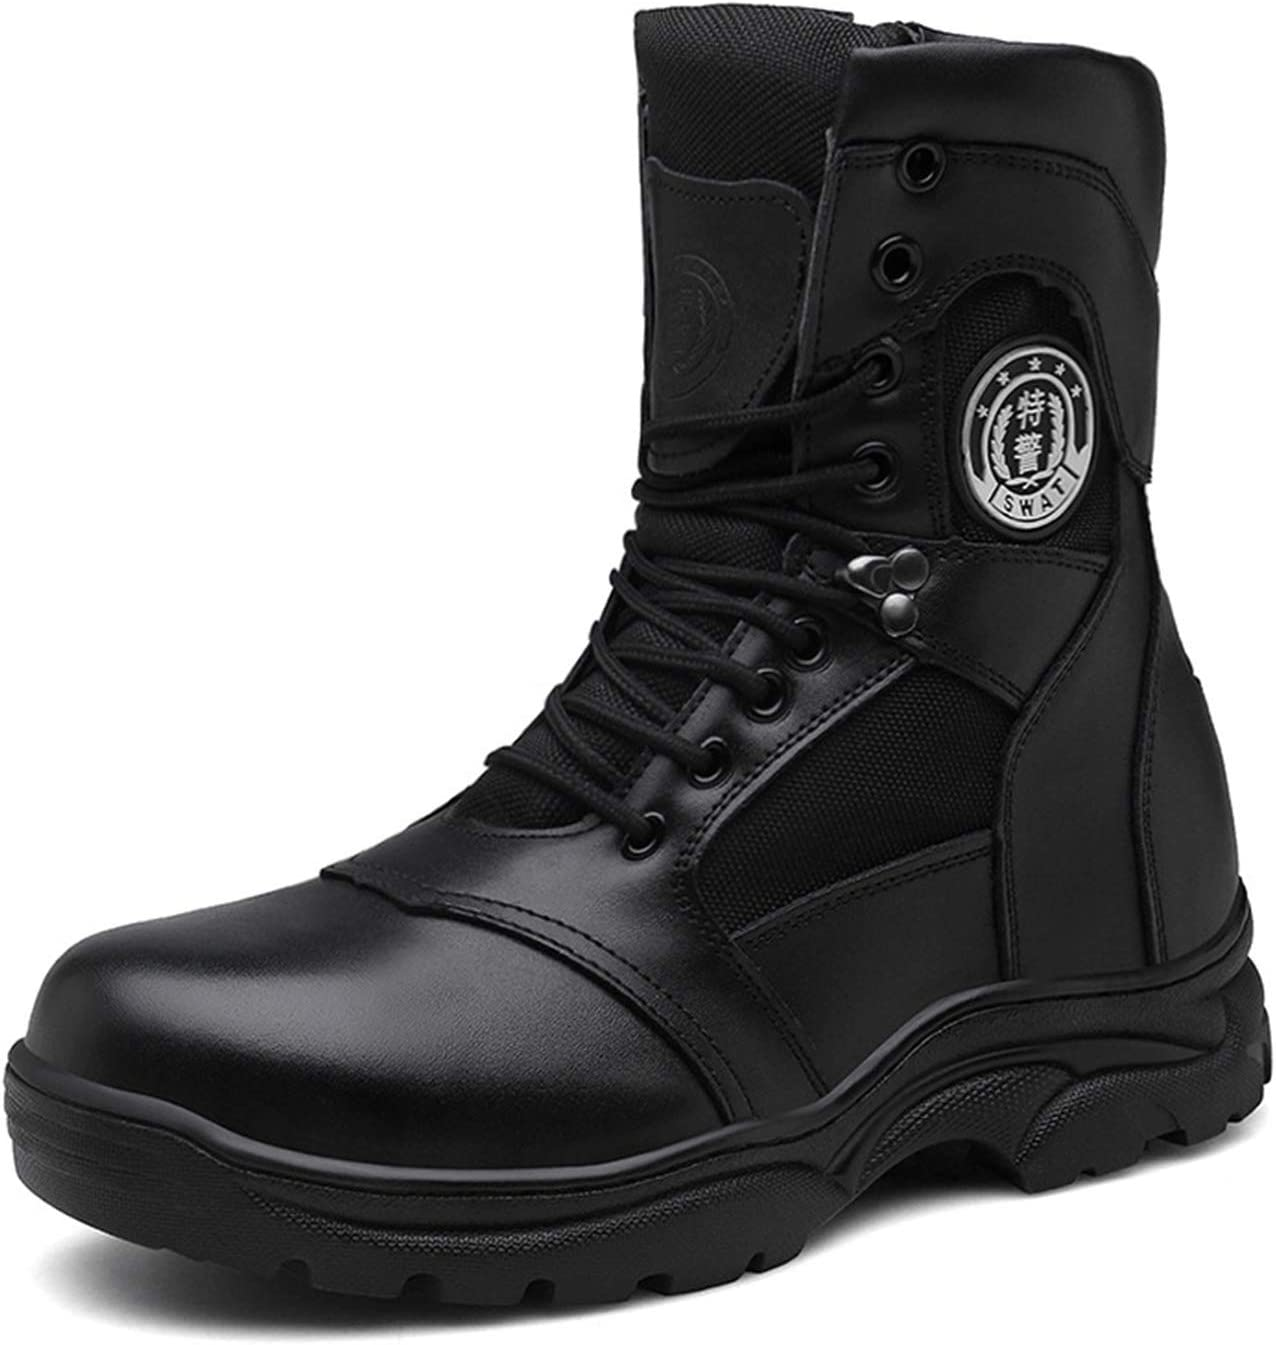 Men's Outdoor Safety Work Boots, Non-Slip Anti-Piercing Steel-Toed Shoes, Wear-Resistant Combat Boots Hiking Boots, Durable Army Patrol Boots Police Boots